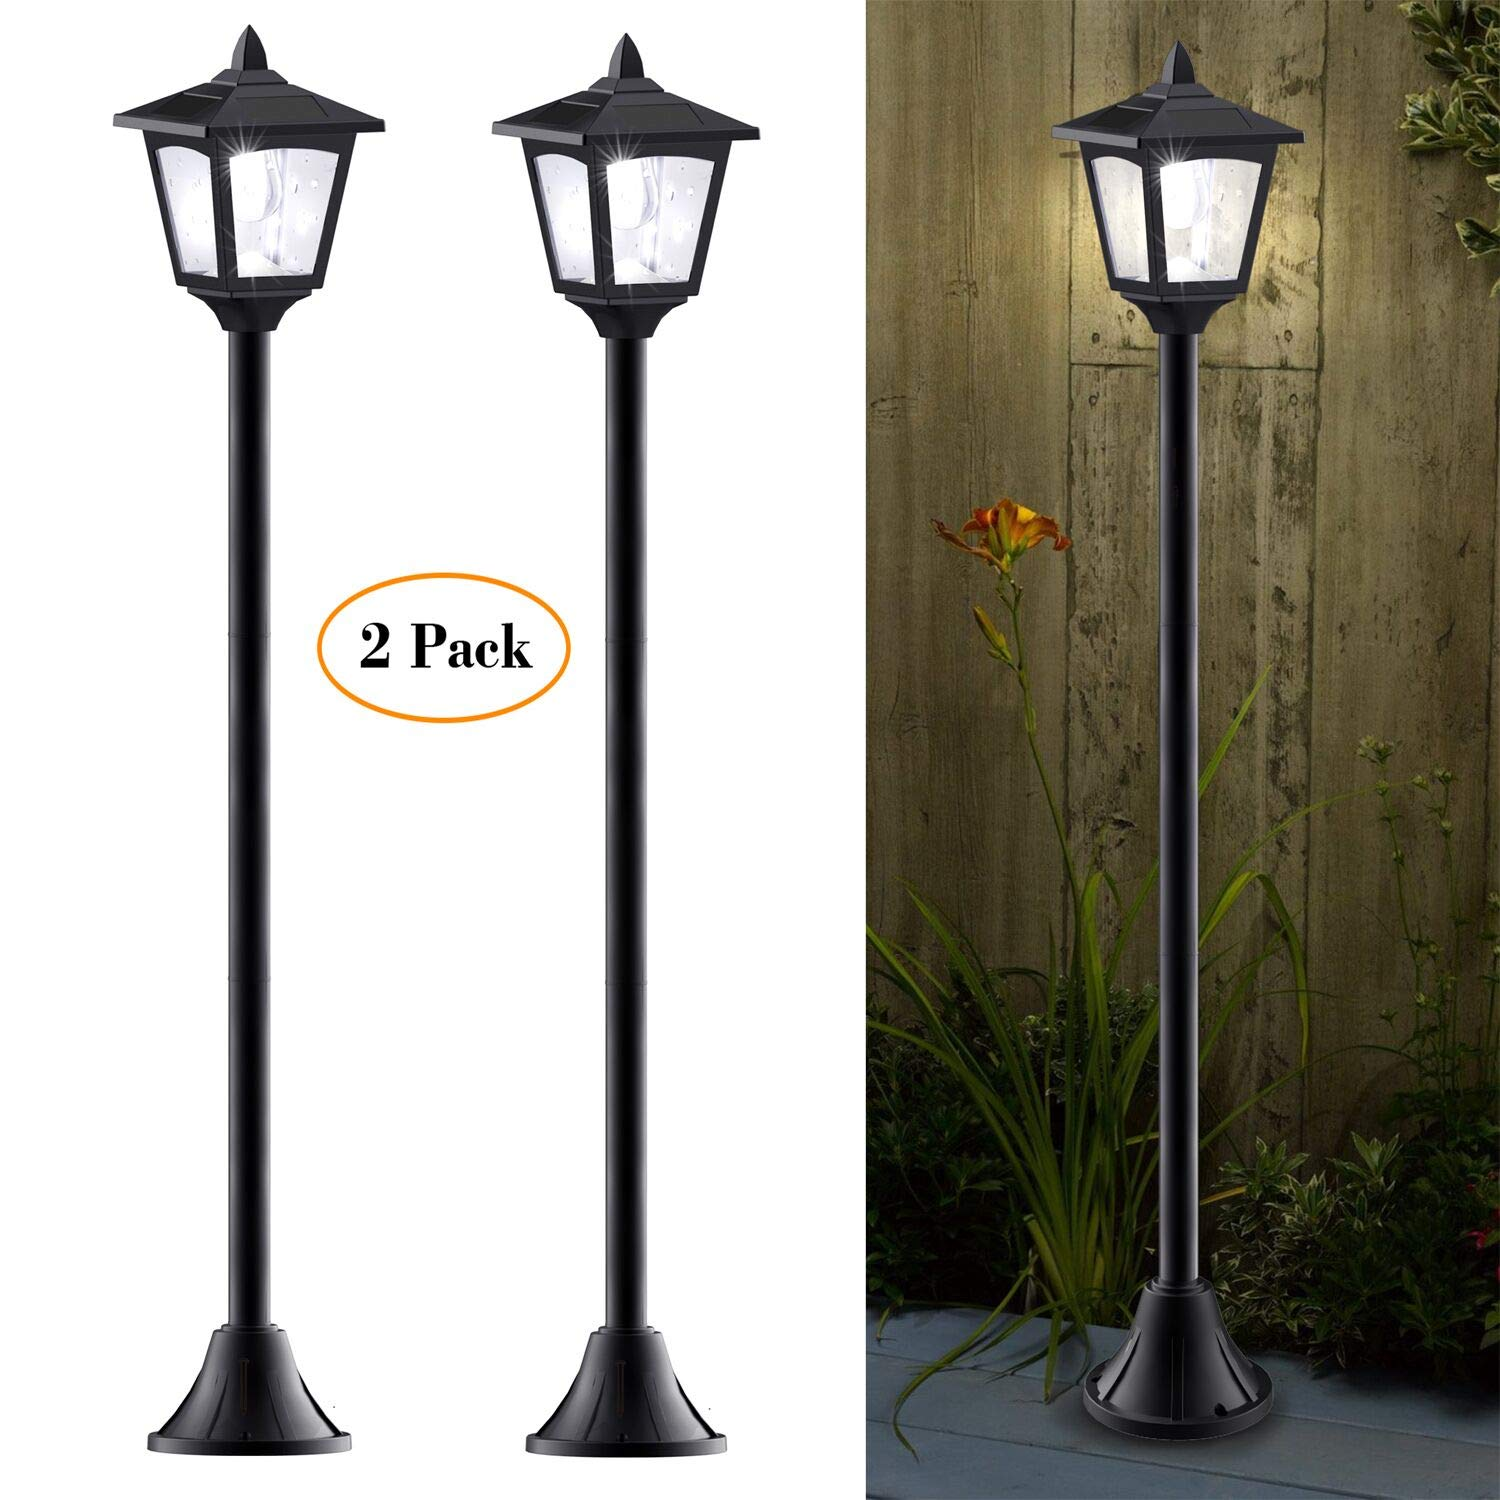 40 Inches Mini Solar Lamp Post Lights Outdoor, Solar Powered Vintage Street Lights for Lawn, Pathway, Driveway, Front/Back Door, Pack of 2 by Greluna